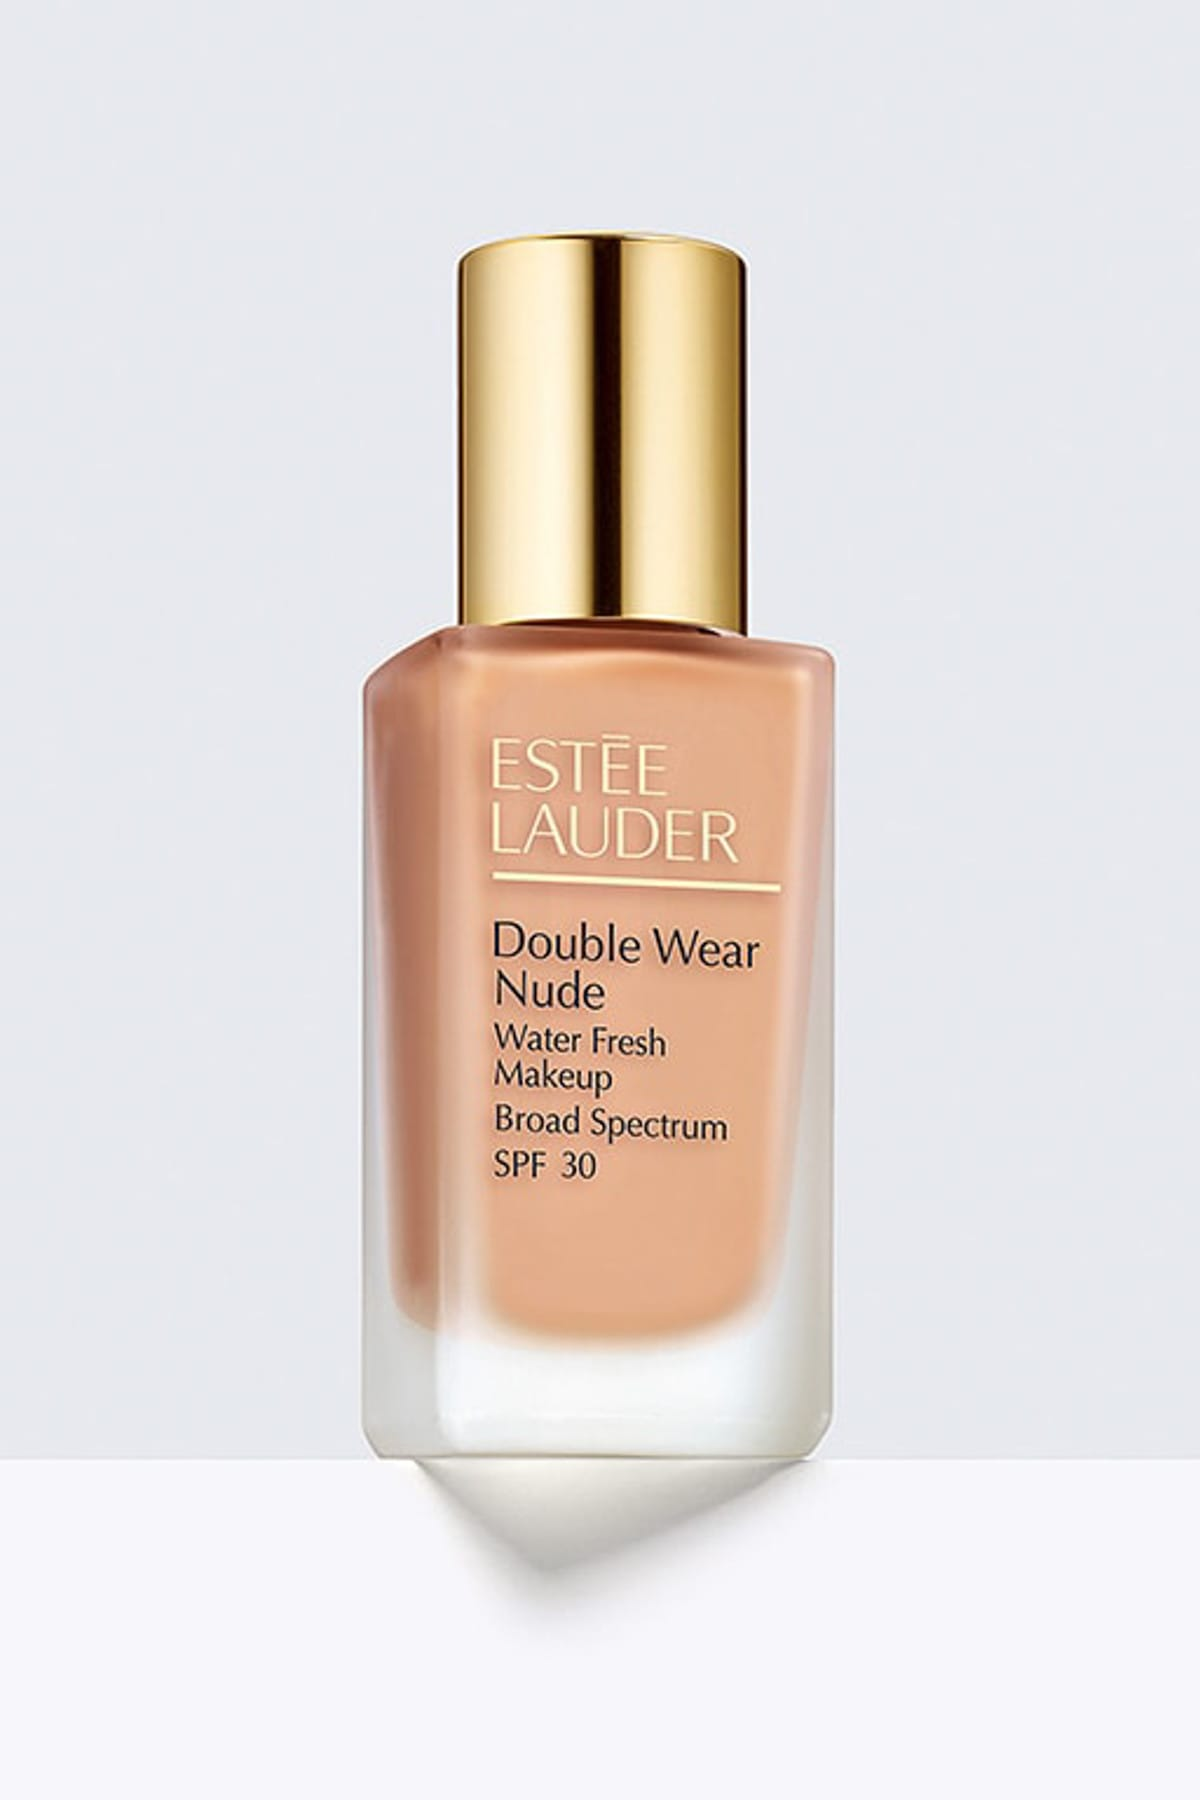 Estee Lauder Fondöten - Double Wear Nude Water Fresh Foundation Spf 30 2C1 Pure Beige 30 ml 887167332249 1